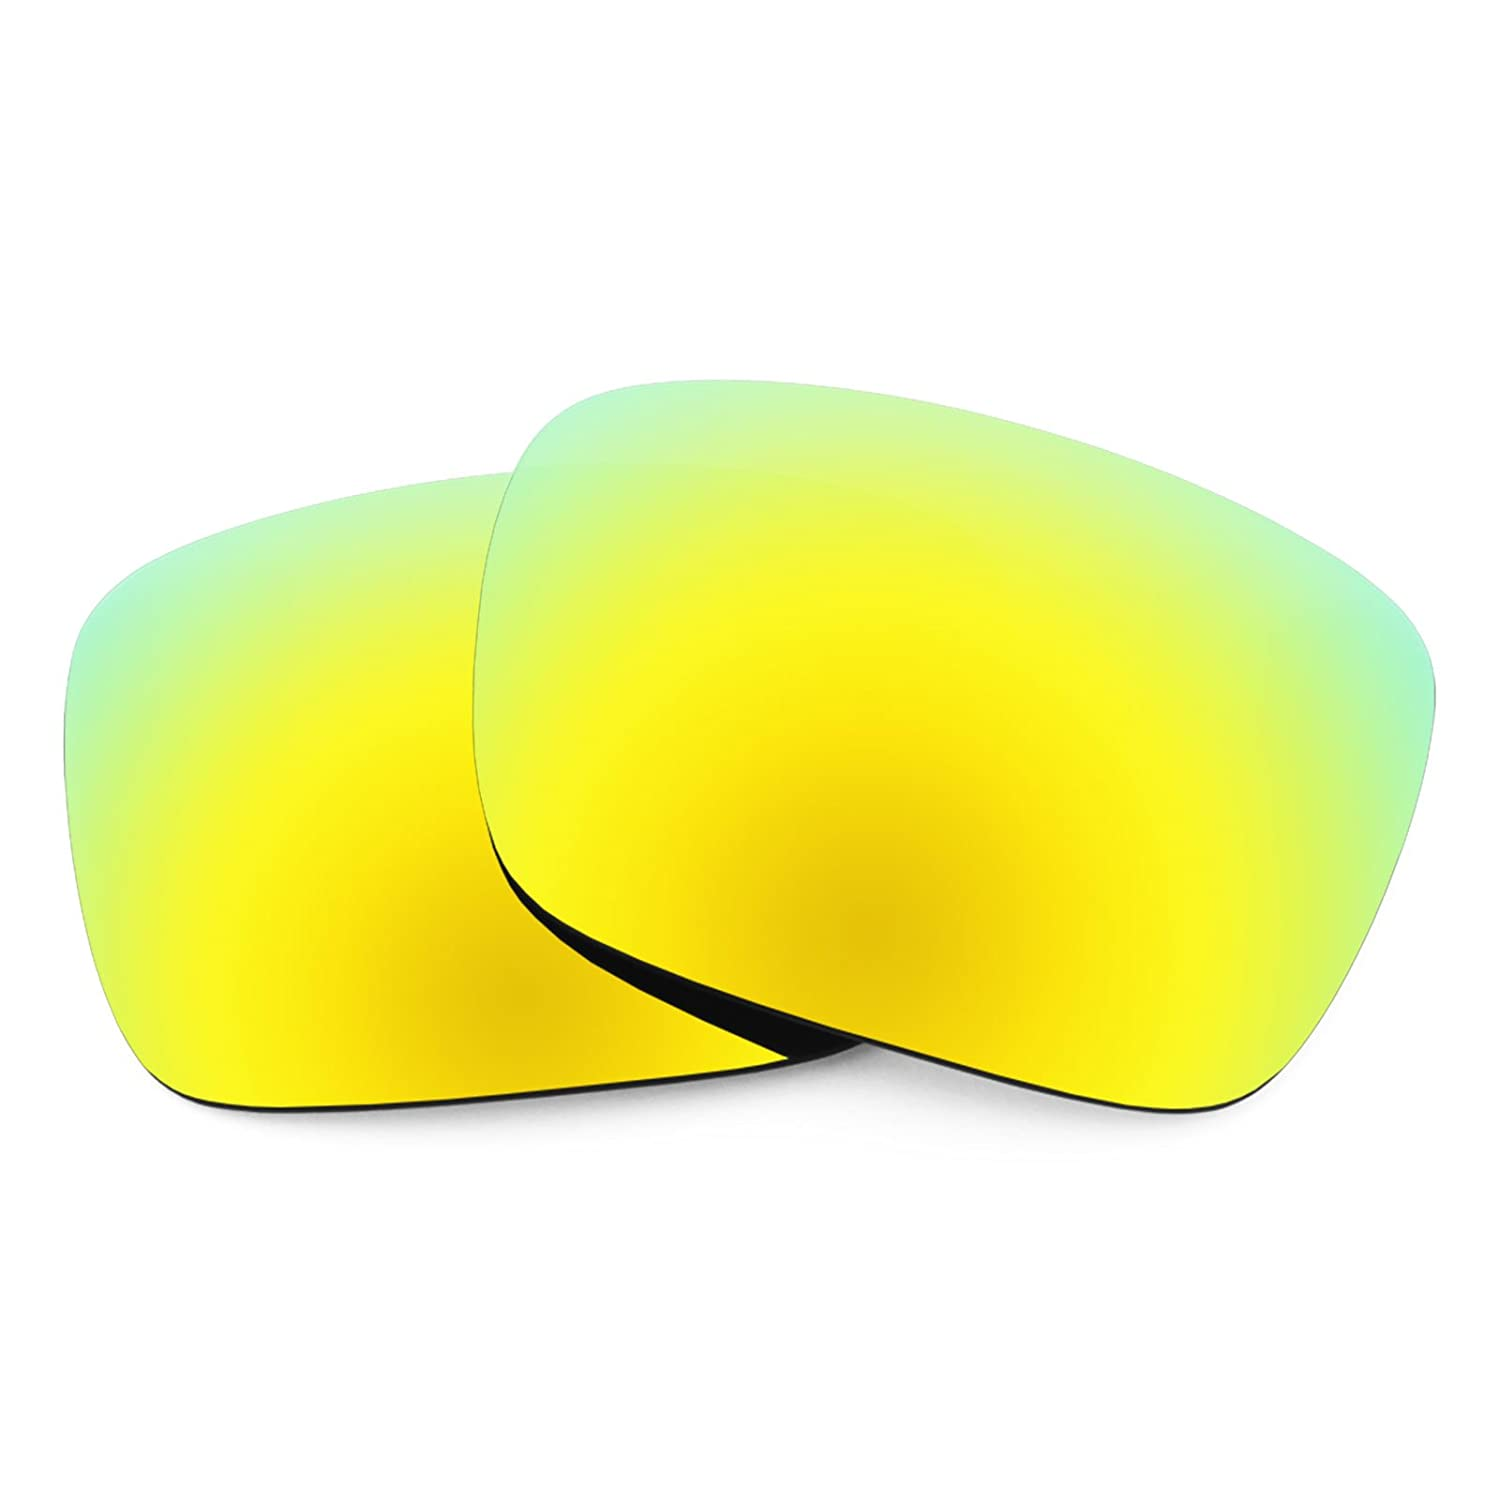 87f4025251 Revant Polarized Replacement Lenses for Von Zipper Elmore Bolt Gold  MirrorShield®  Amazon.ca  Sports   Outdoors